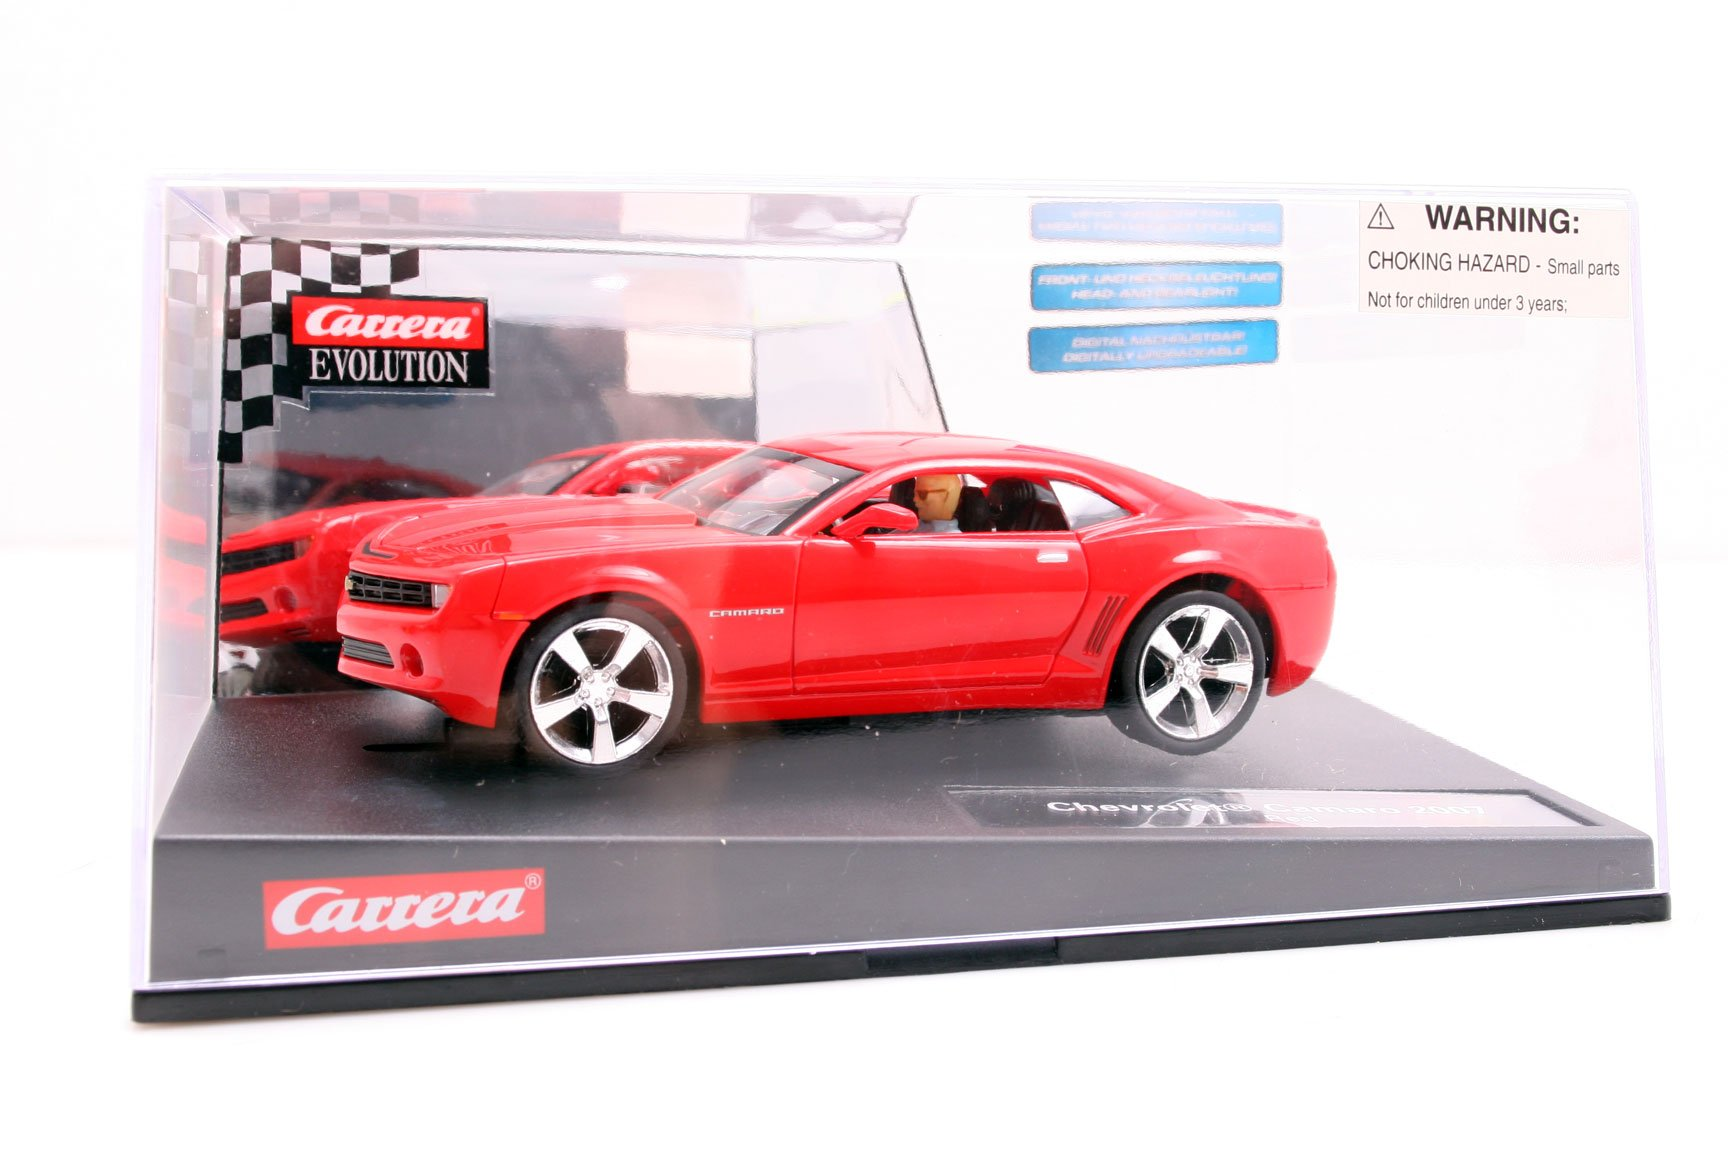 Carrera Evolution 1/32 2007 Chevrolet Camaro Slot Car - Red